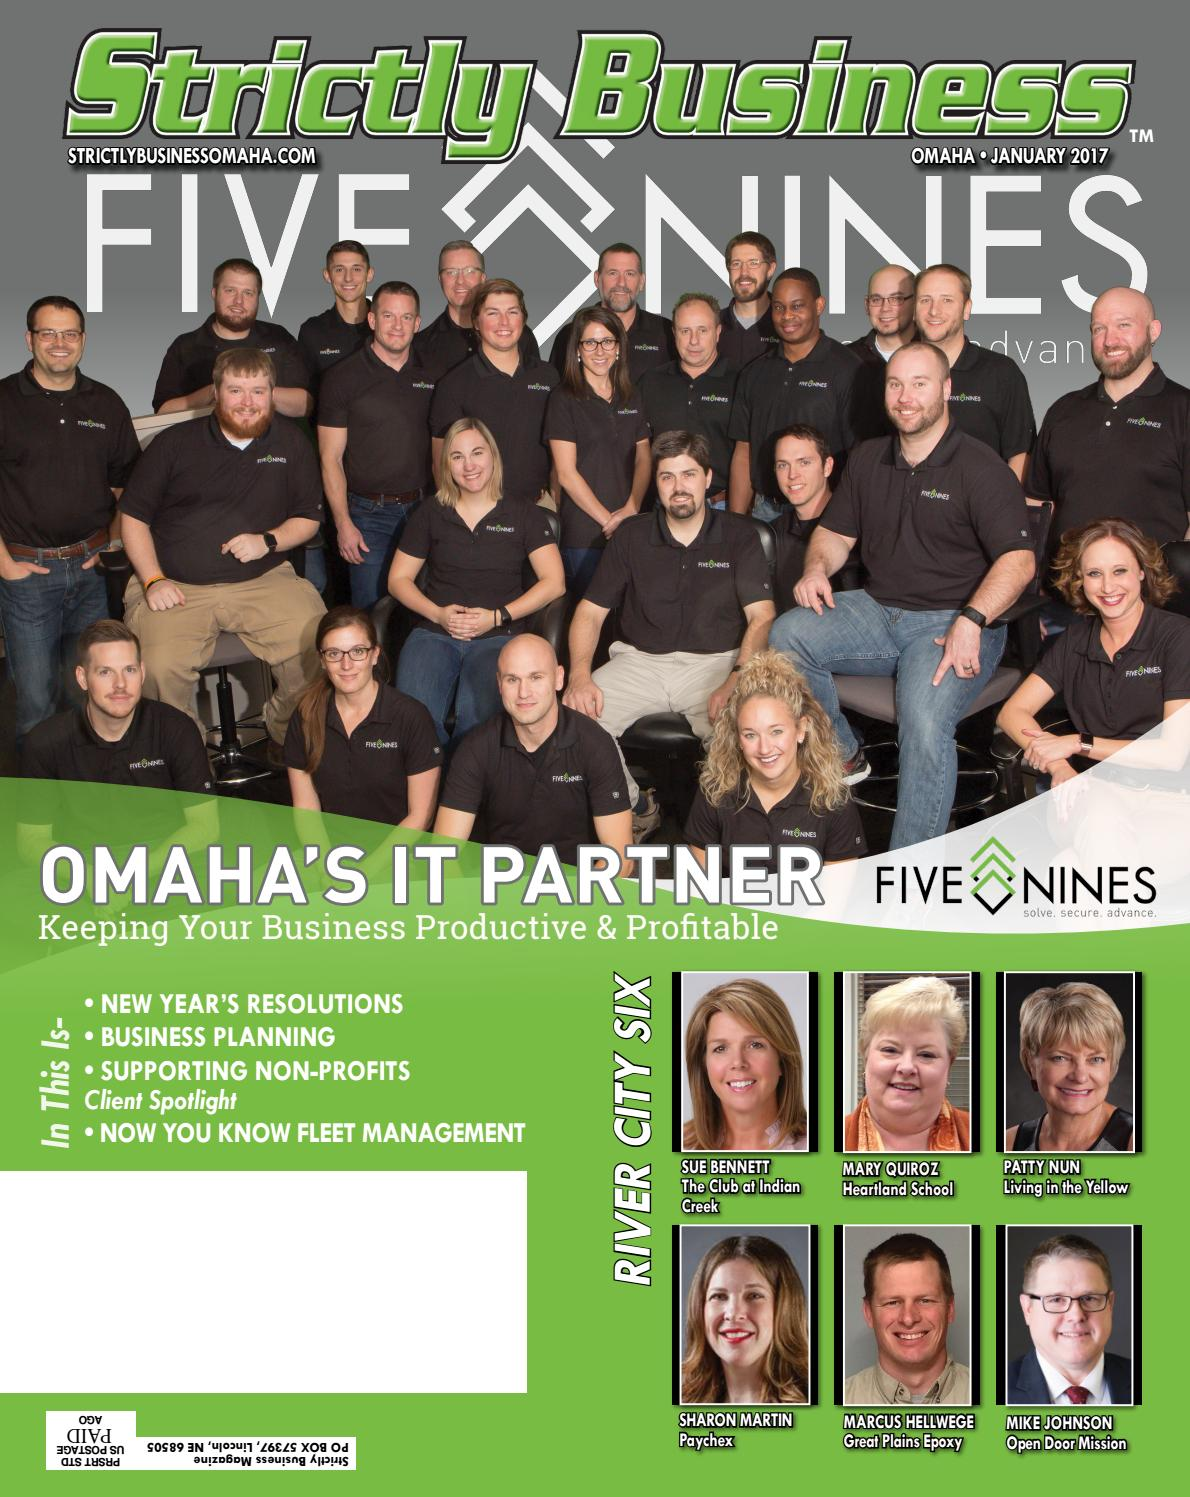 Strictly business omaha january 2017 by strictly business magazine issuu